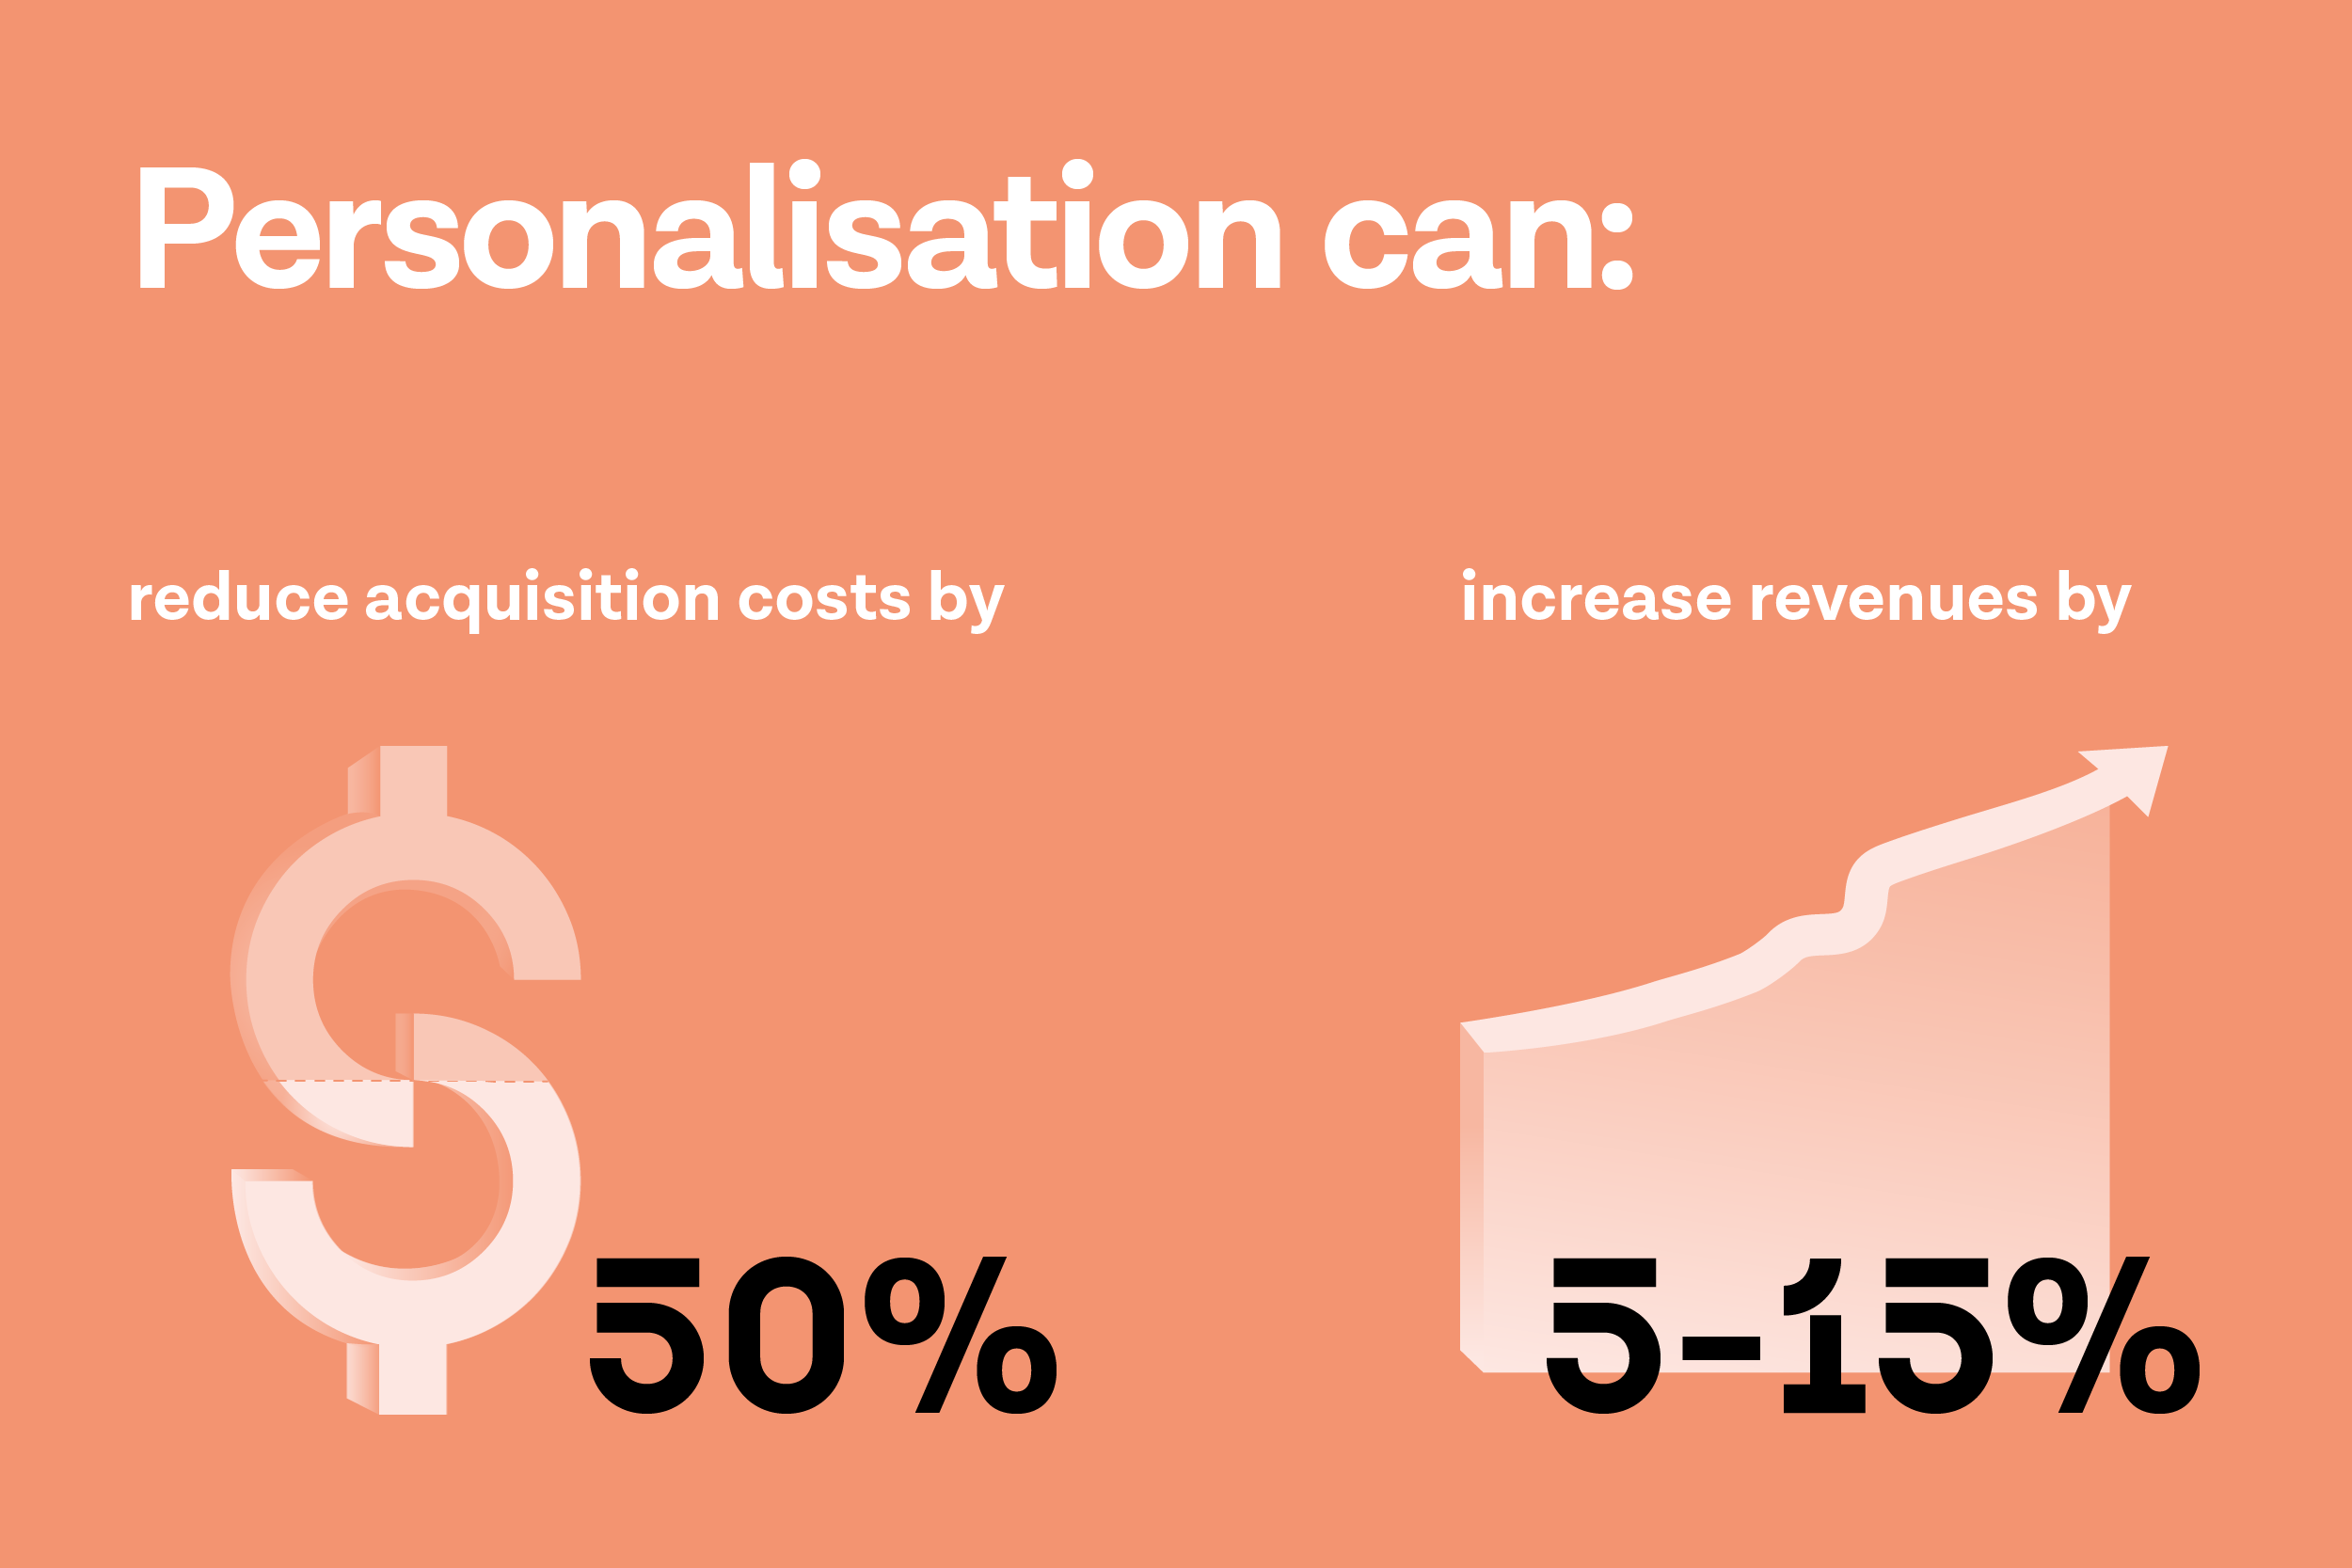 """Source: """"How marketers can personalize at scale,"""" Harvard Business Review, November 23, 2015."""